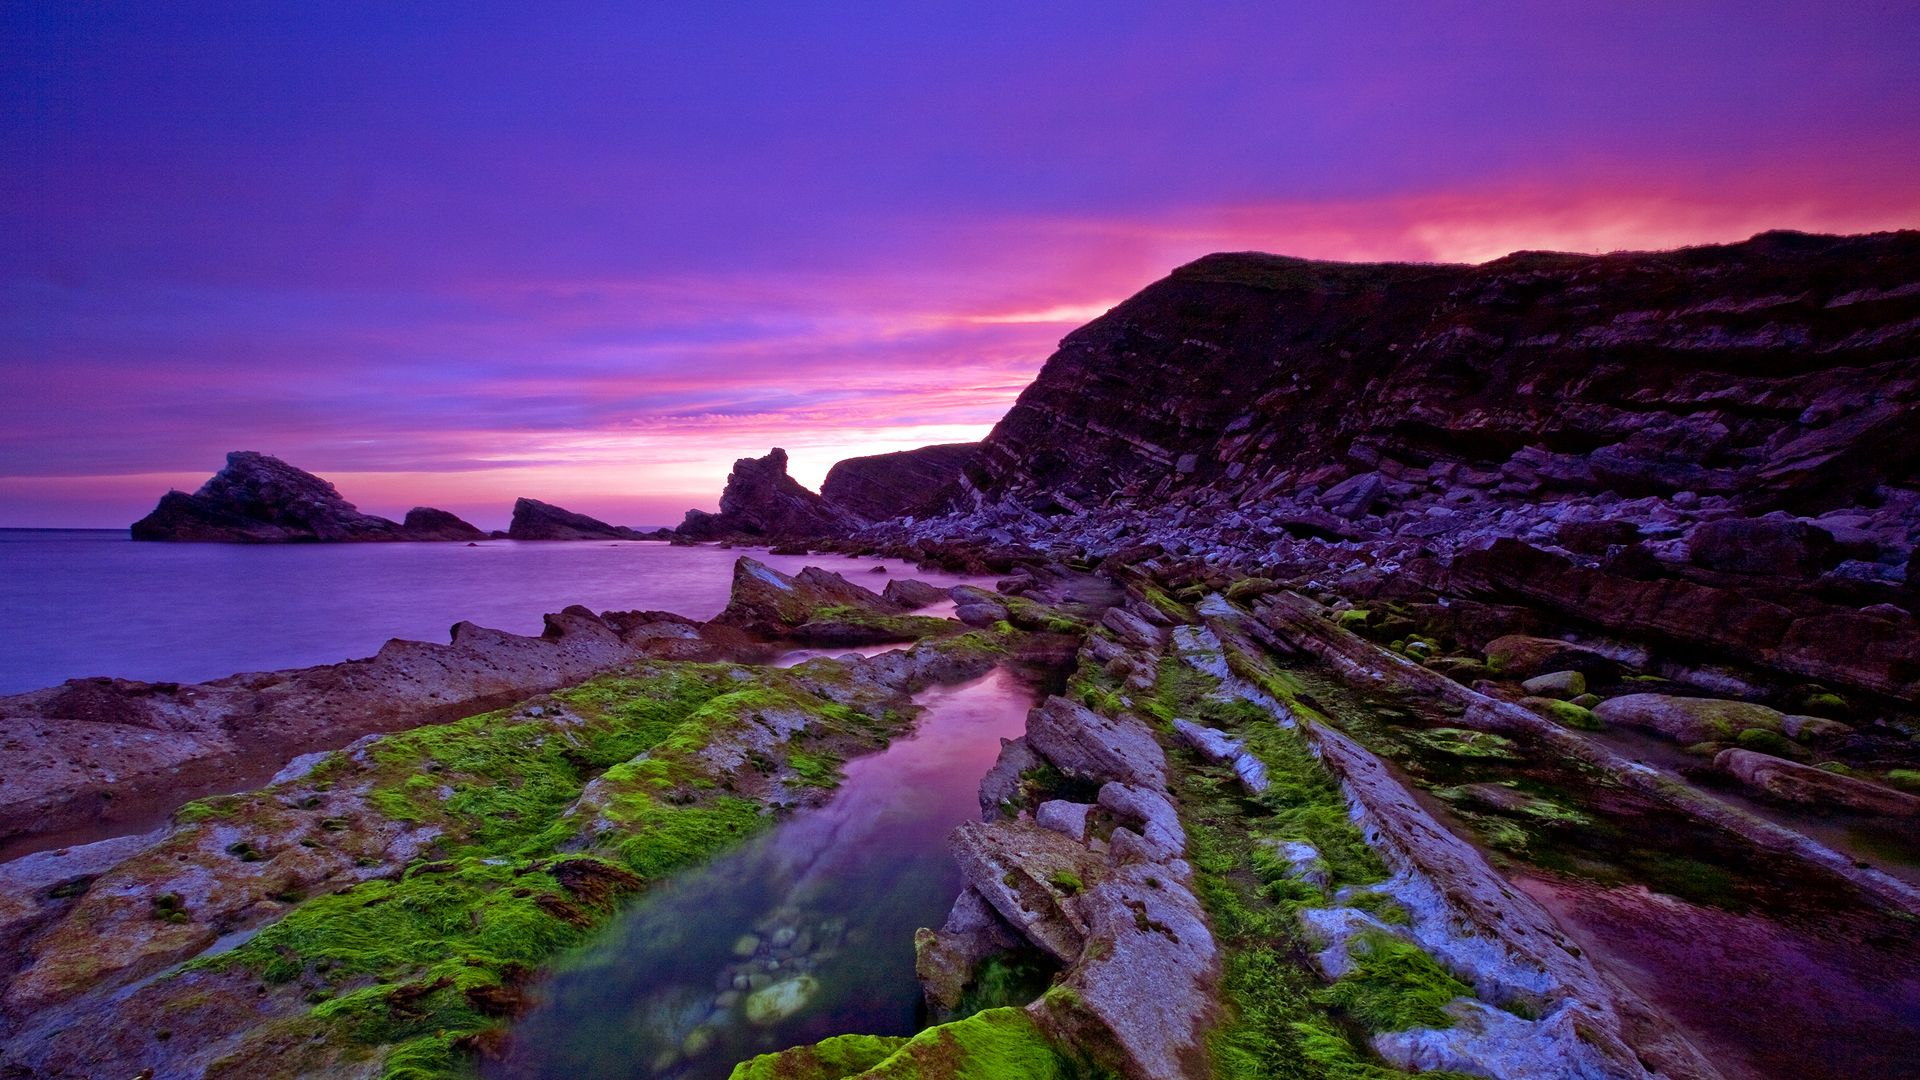 Mupe Bay England Hd Jpg 1920 1080 Sunset Landscape Scenic Pictures